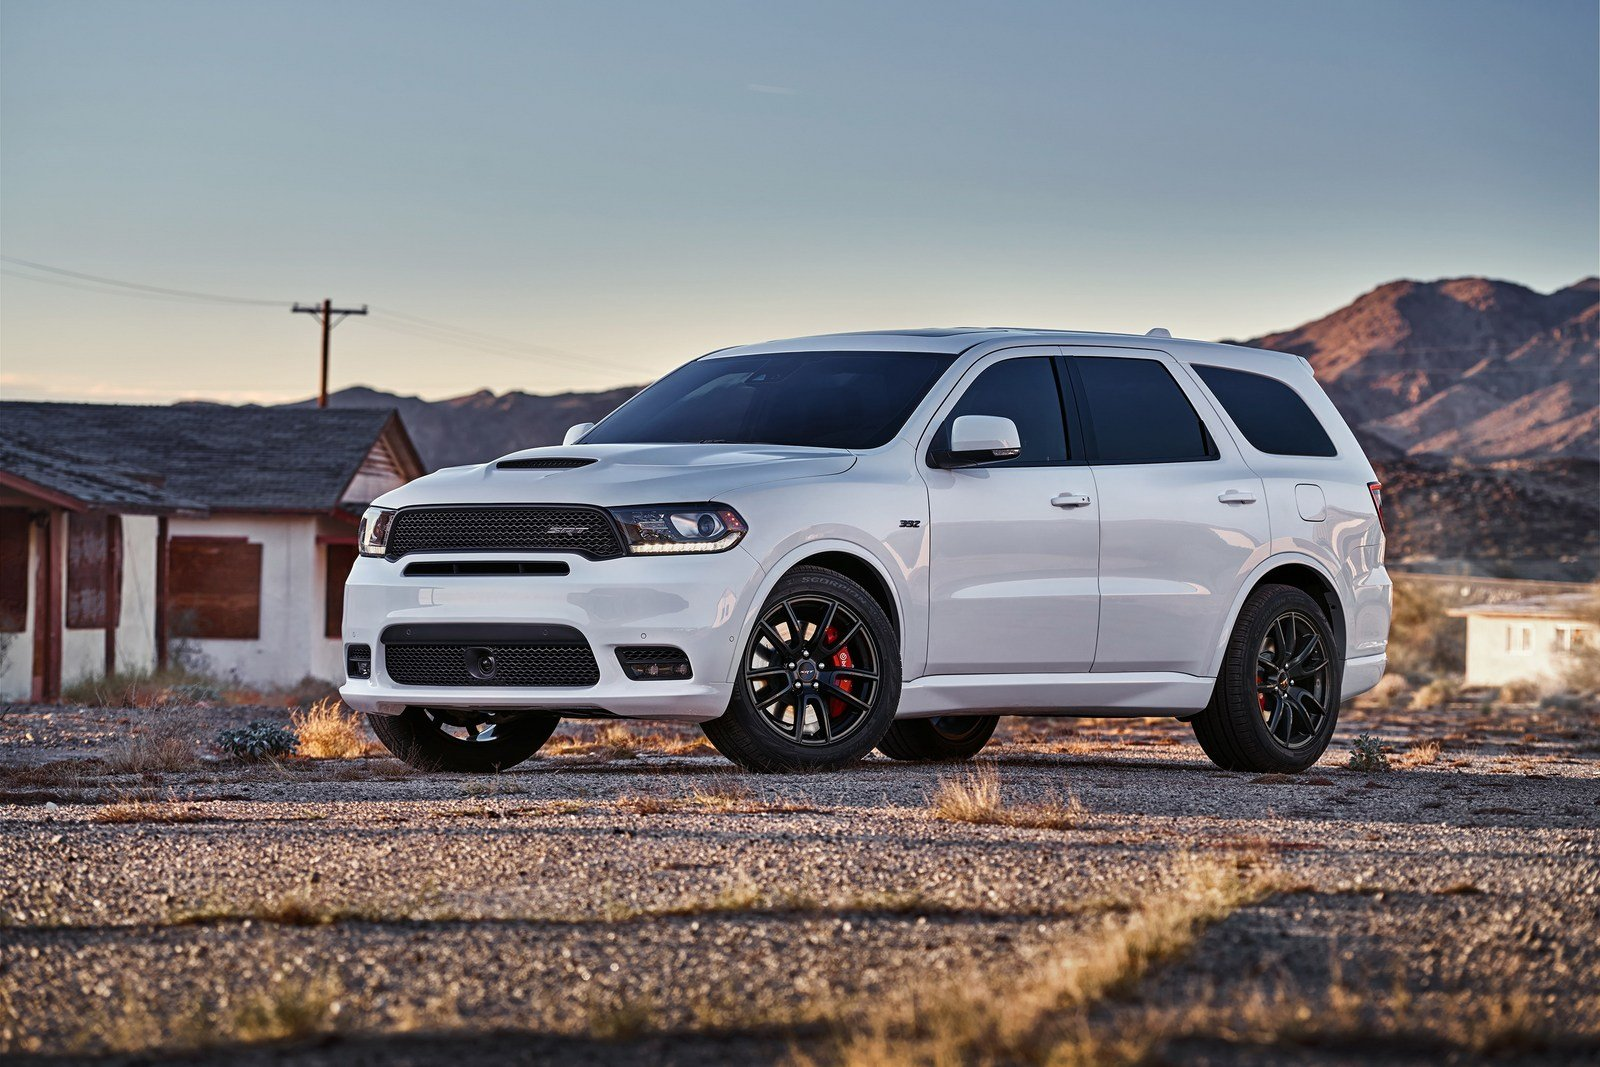 2018 dodge durango srt specs release date price interior engine. Black Bedroom Furniture Sets. Home Design Ideas